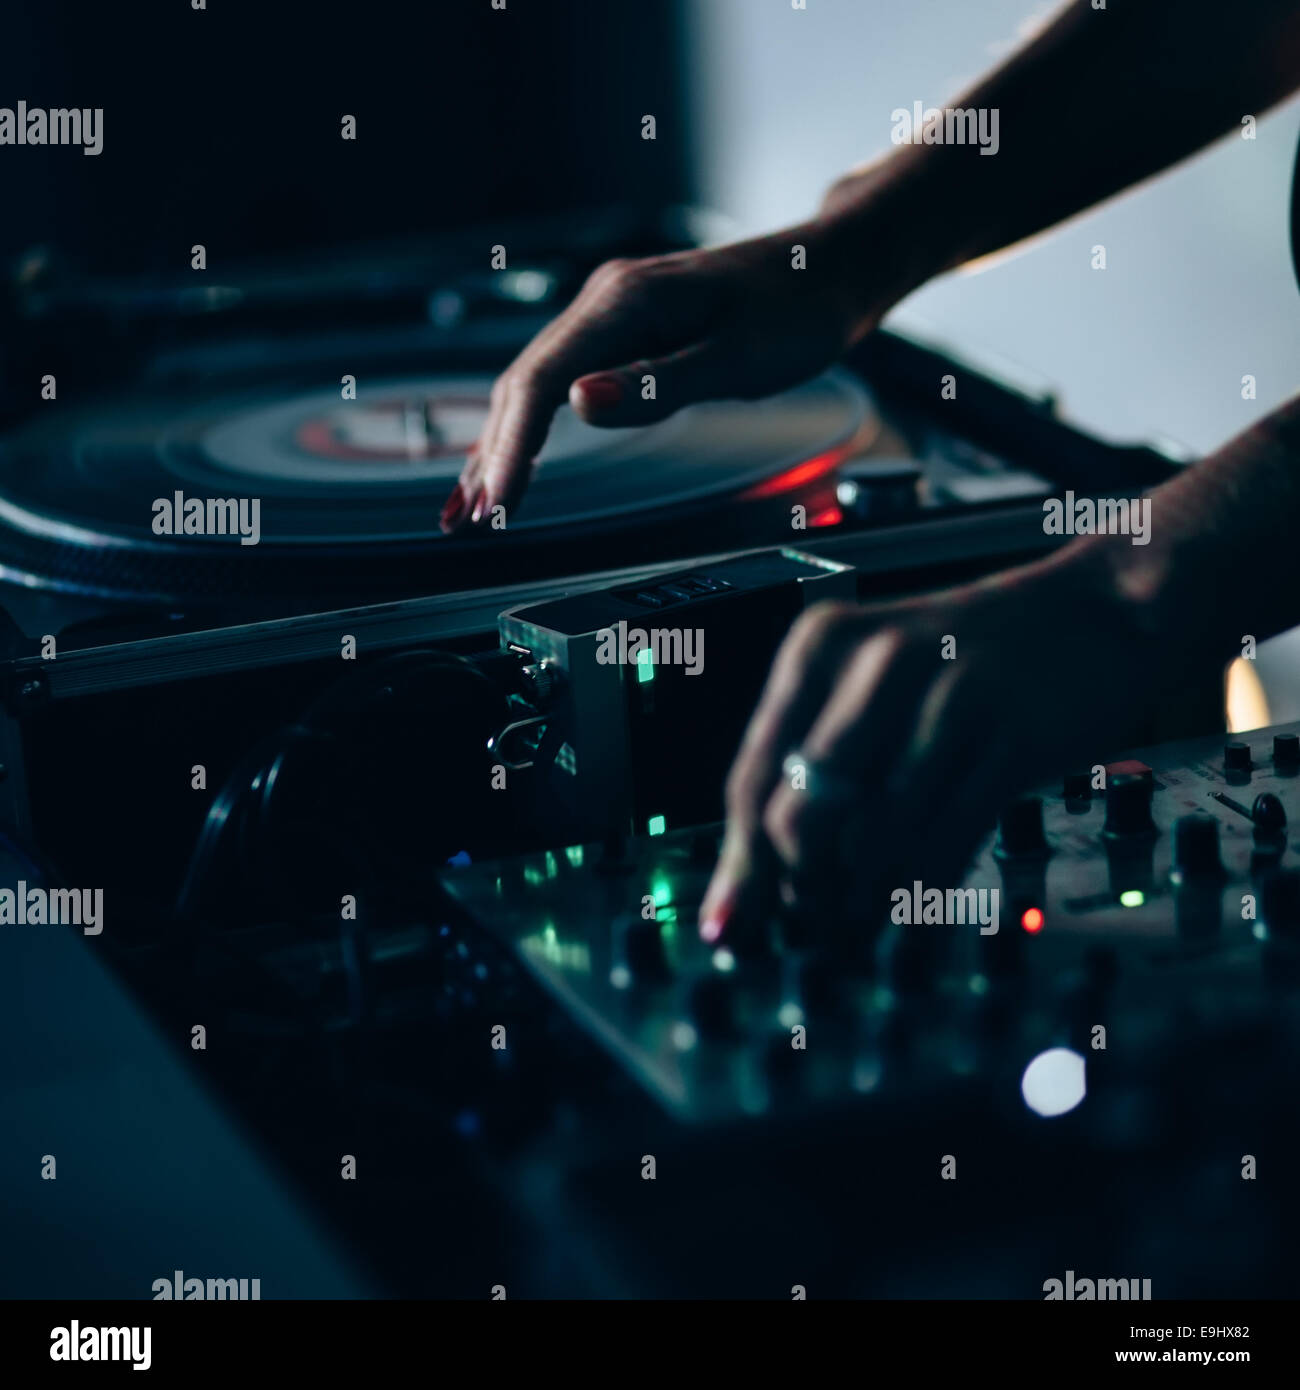 Female dj at work in night club. Shallow depth of field - Stock Image